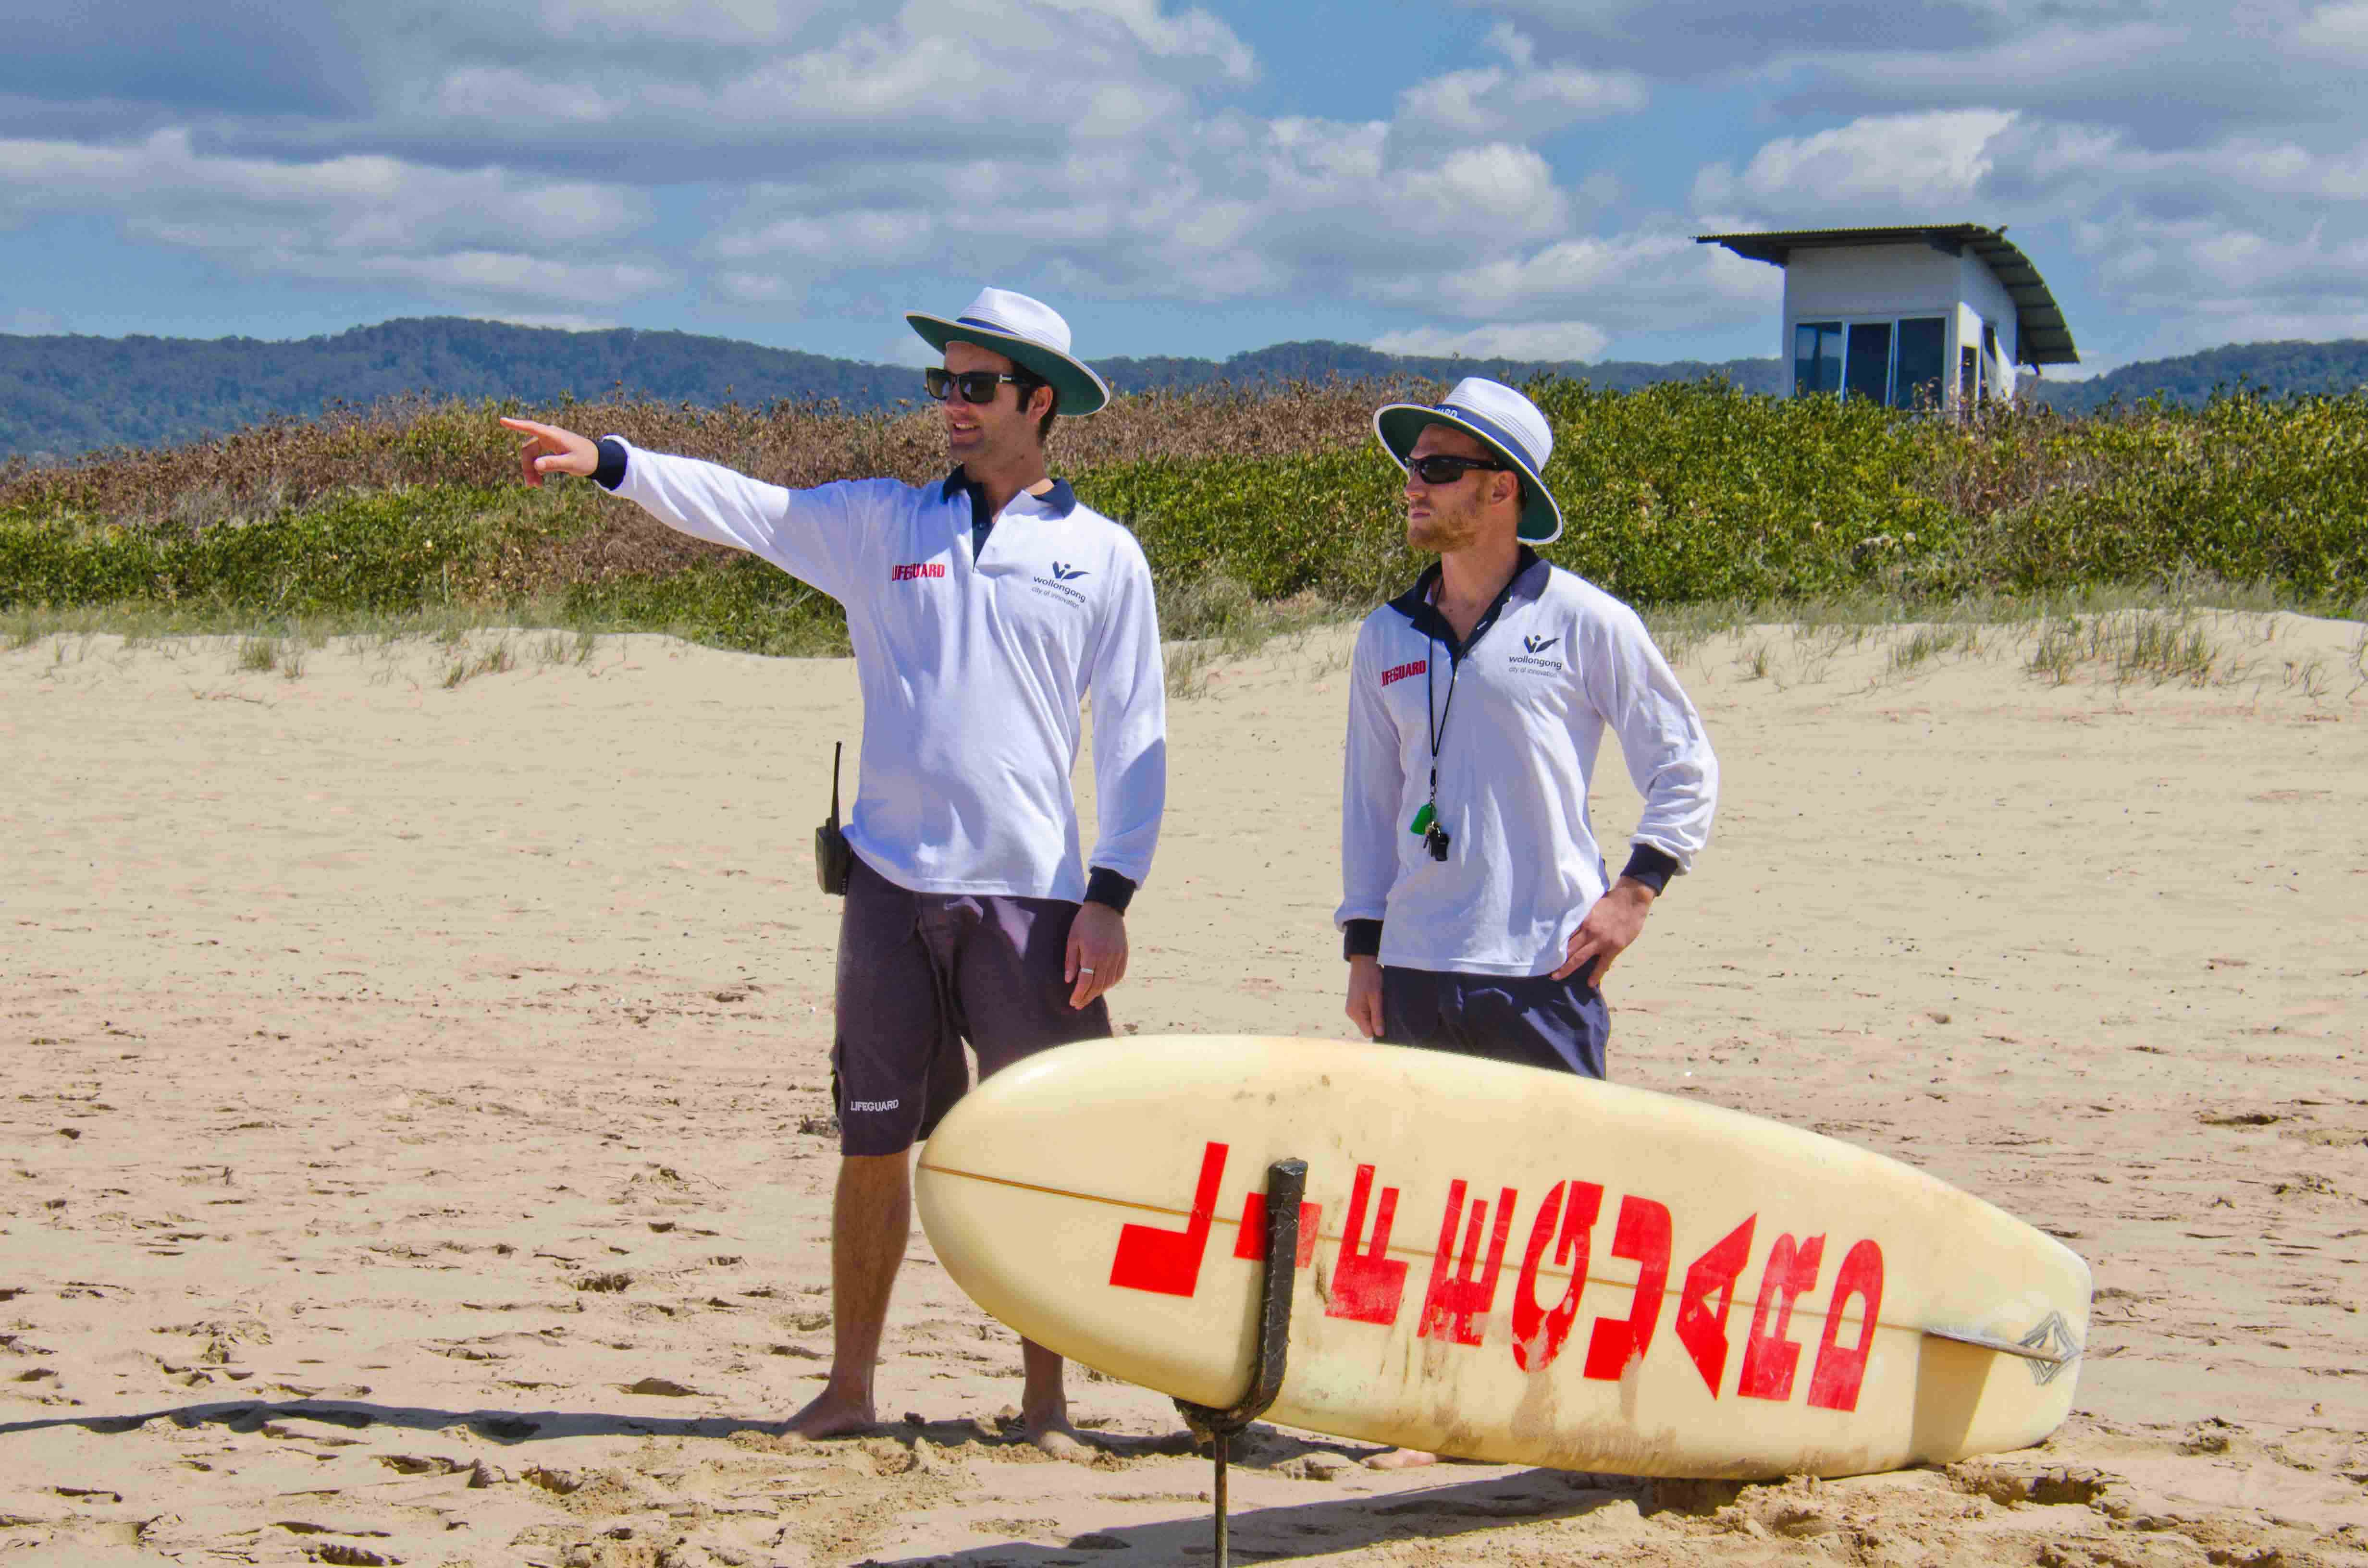 Wollongong Life Guards Peter Hopkins and Ian Logue prepare for the beginning of another surf season at Corrimal Beach today. PHOTO: Warren & Diana Ackary.